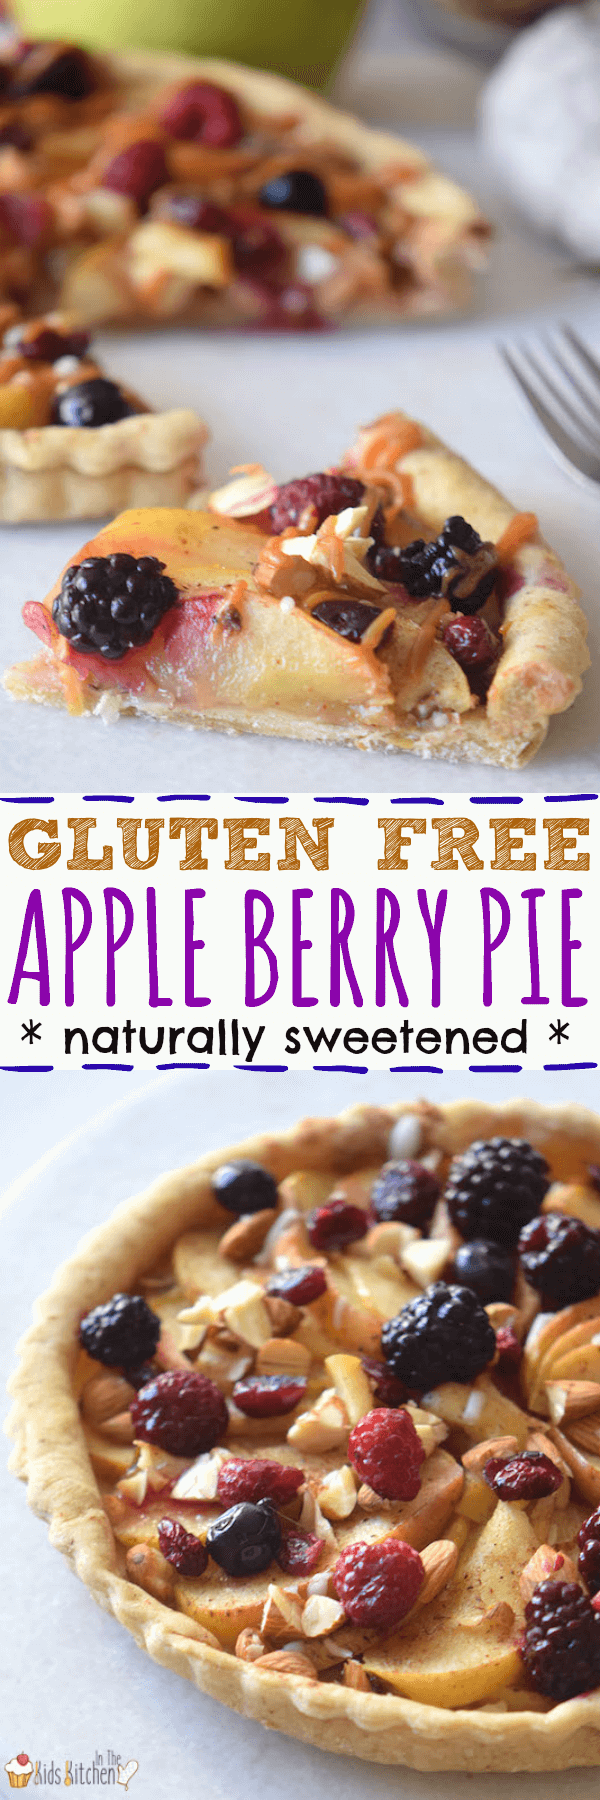 Satisfy your apple pie cravings...without all the refined flour and sugar! This Gluten-Free Apple Berry Pie is made with fresh fruit and a touch of honey.